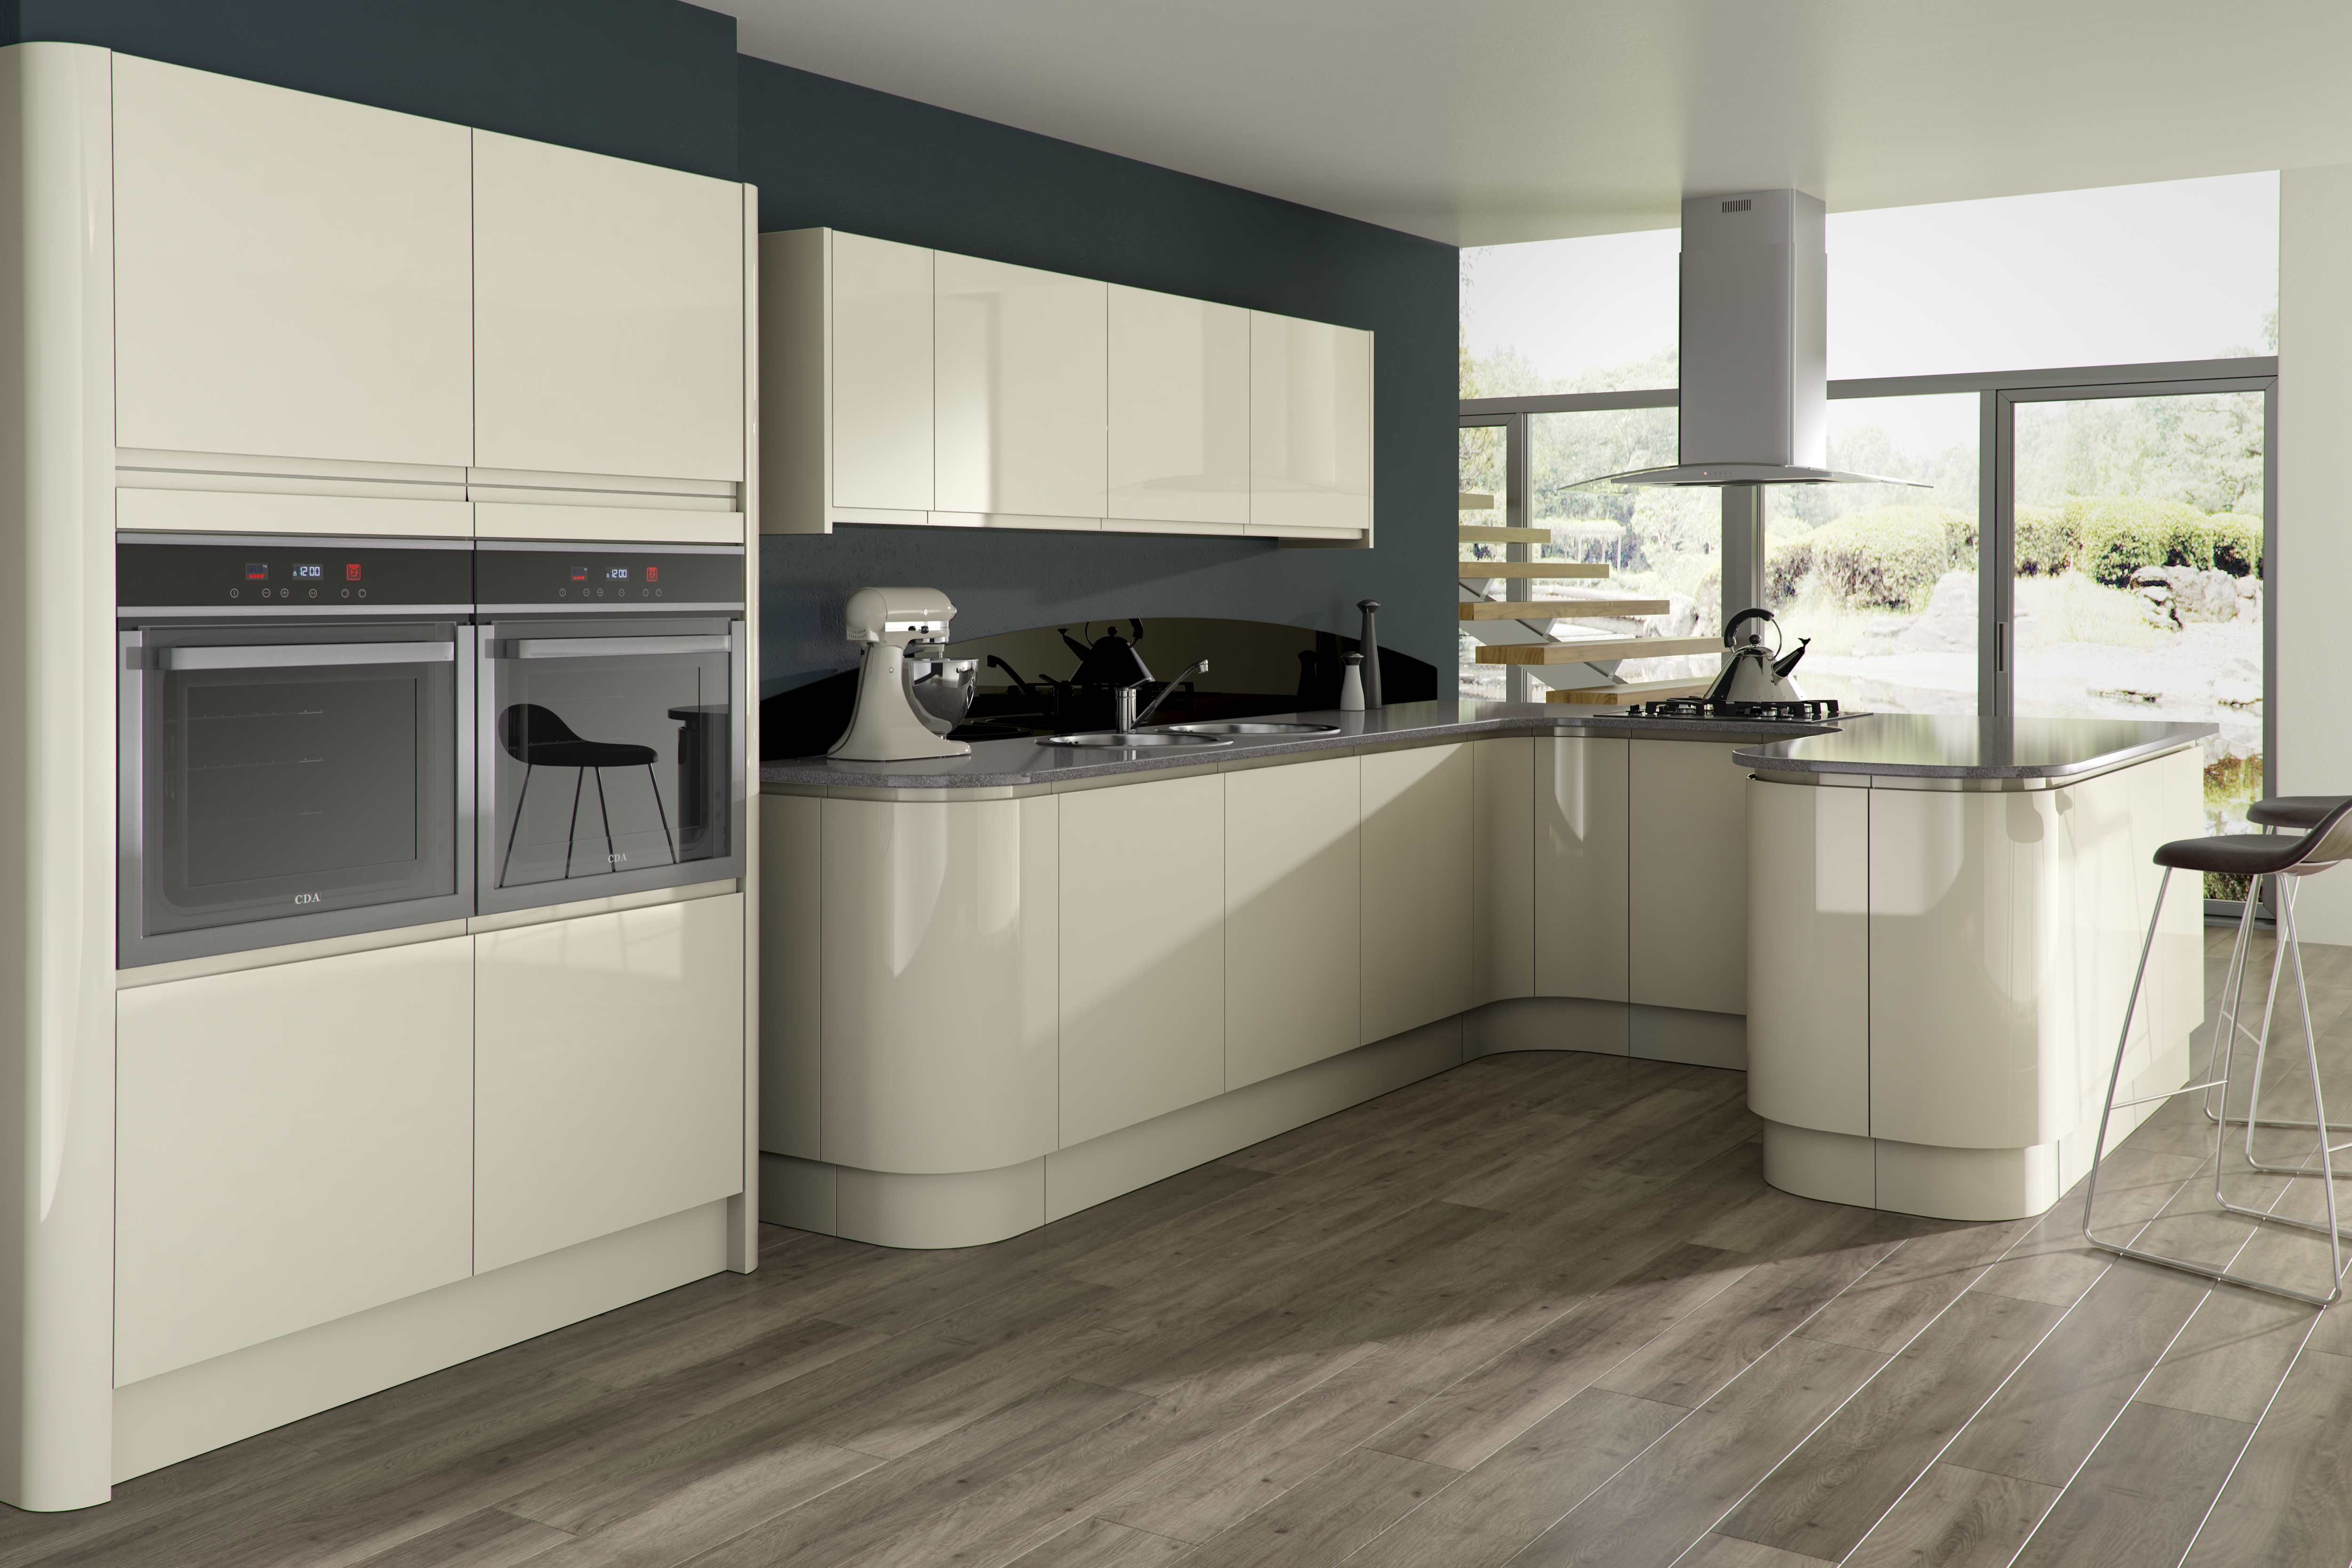 Unit Kitchens Opal Gloss Stone Kitchen Units For Modern Kitchen With The